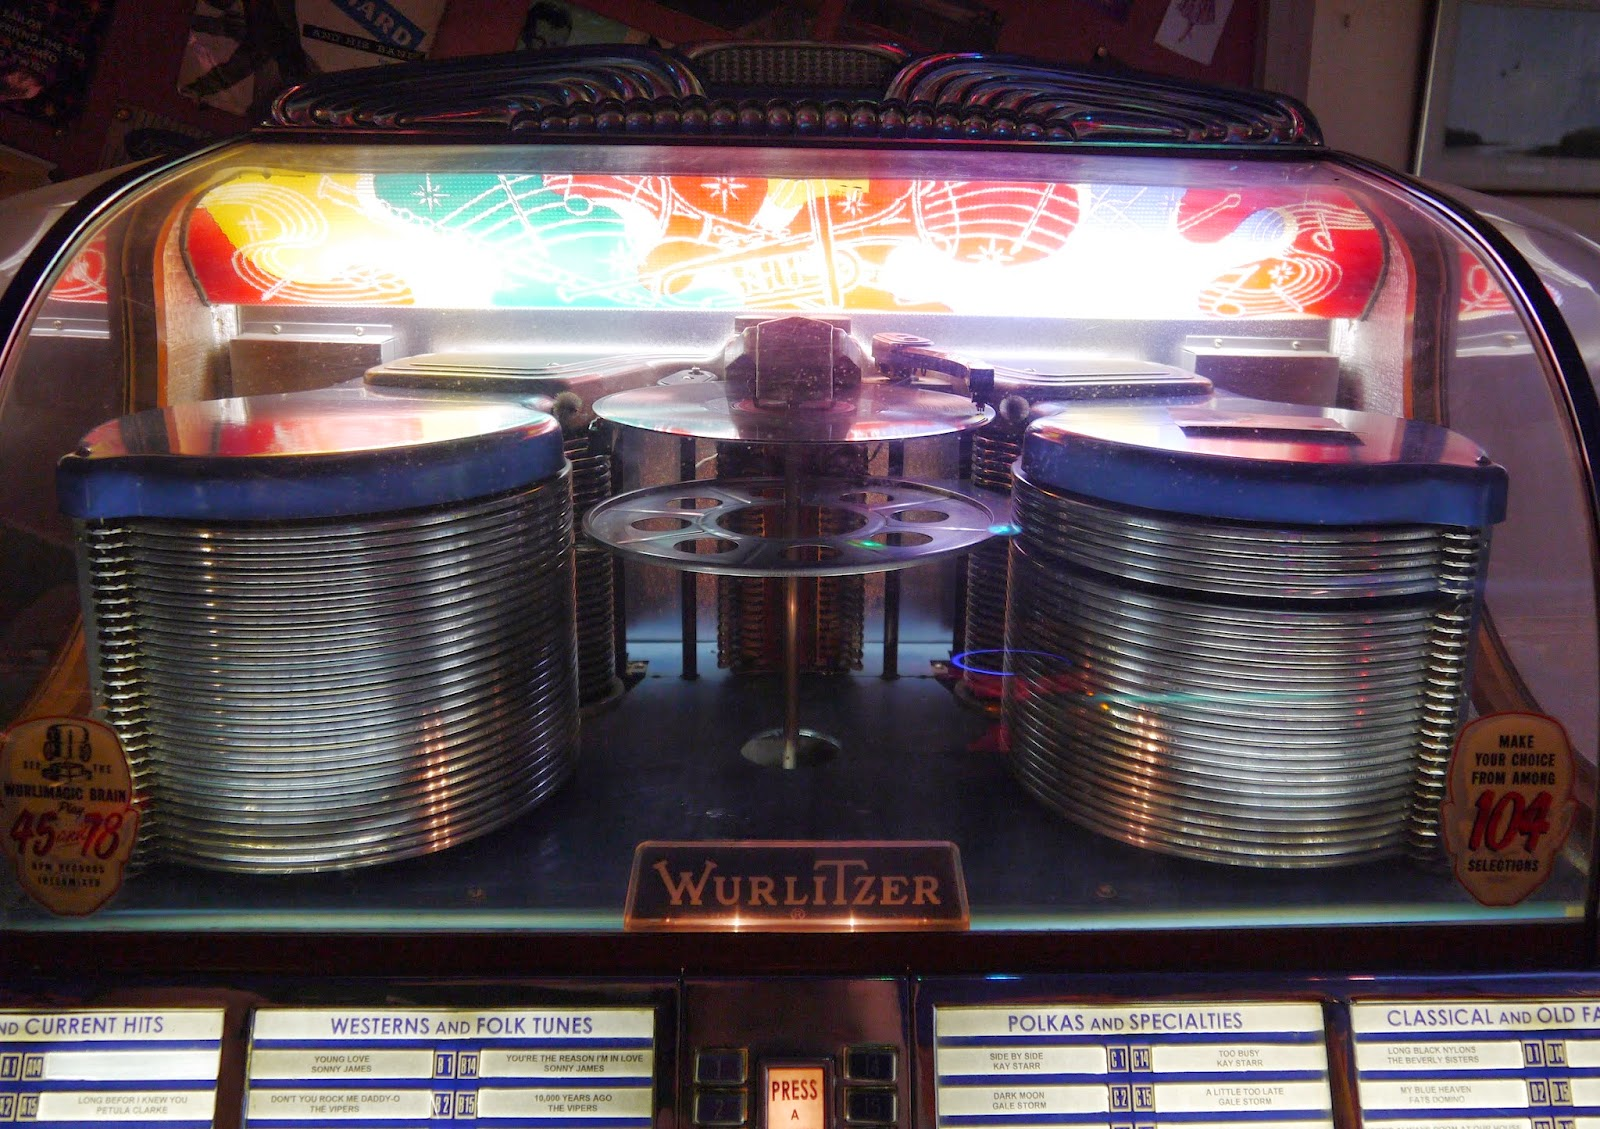 'Wurlitzer 1500' 1952 Jukebox